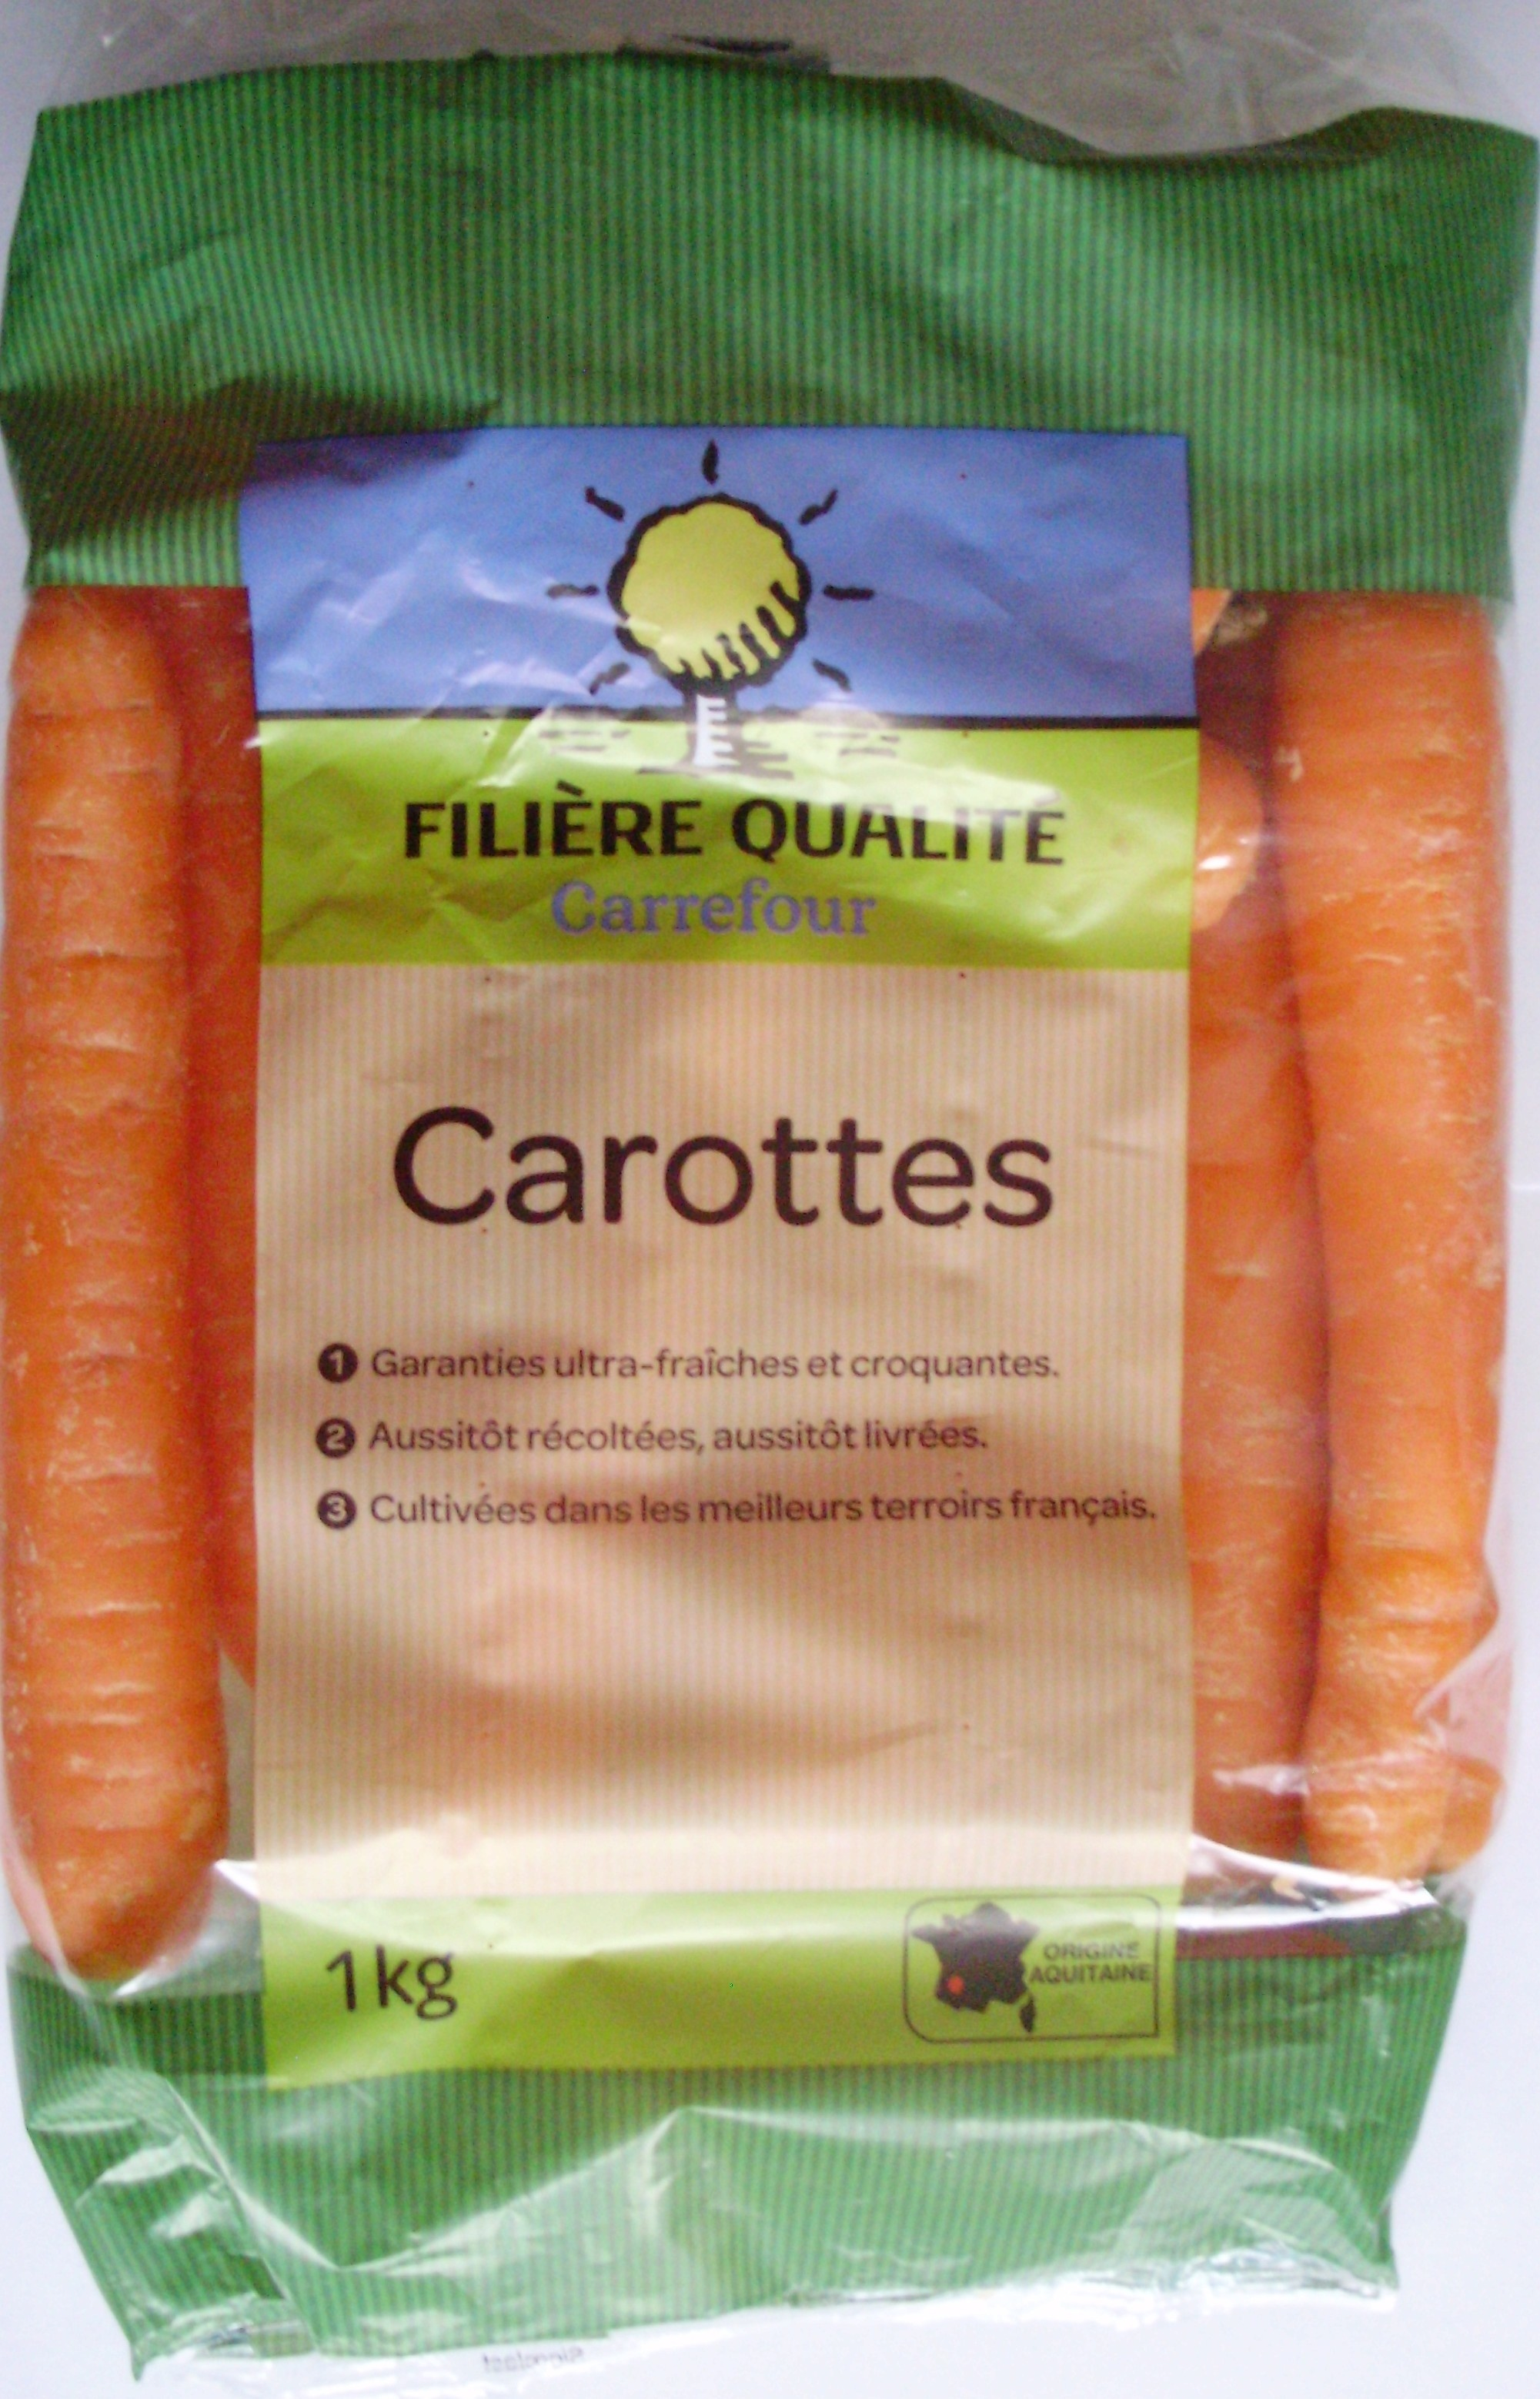 Carottes - Product - fr